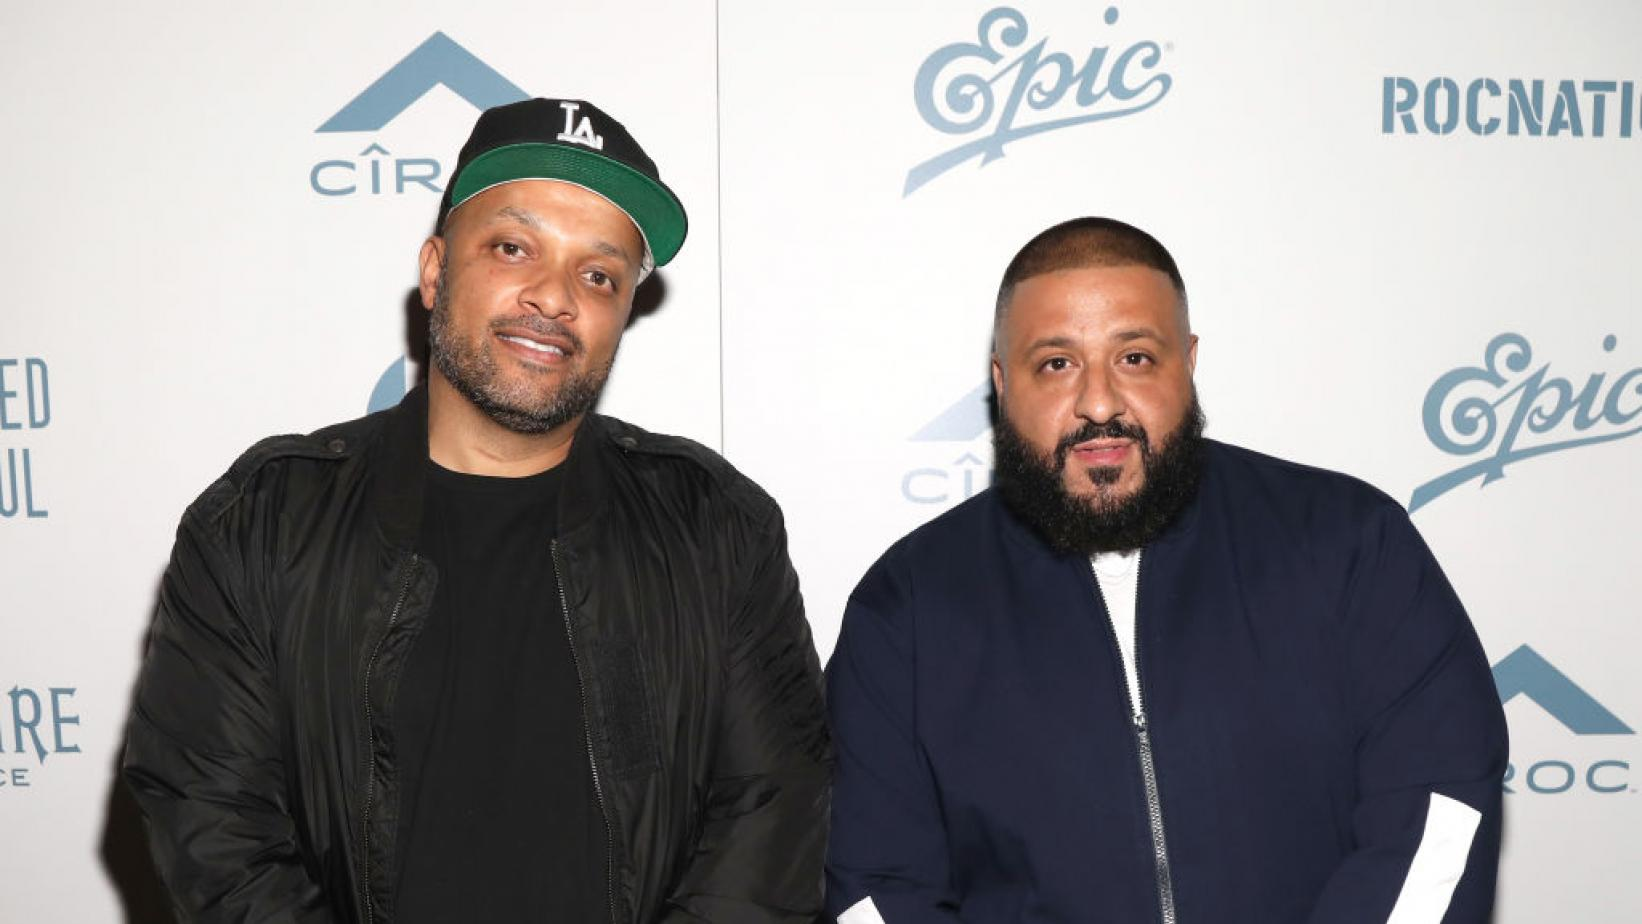 Roc Nation CEO Jay Brown and DJ Khaled